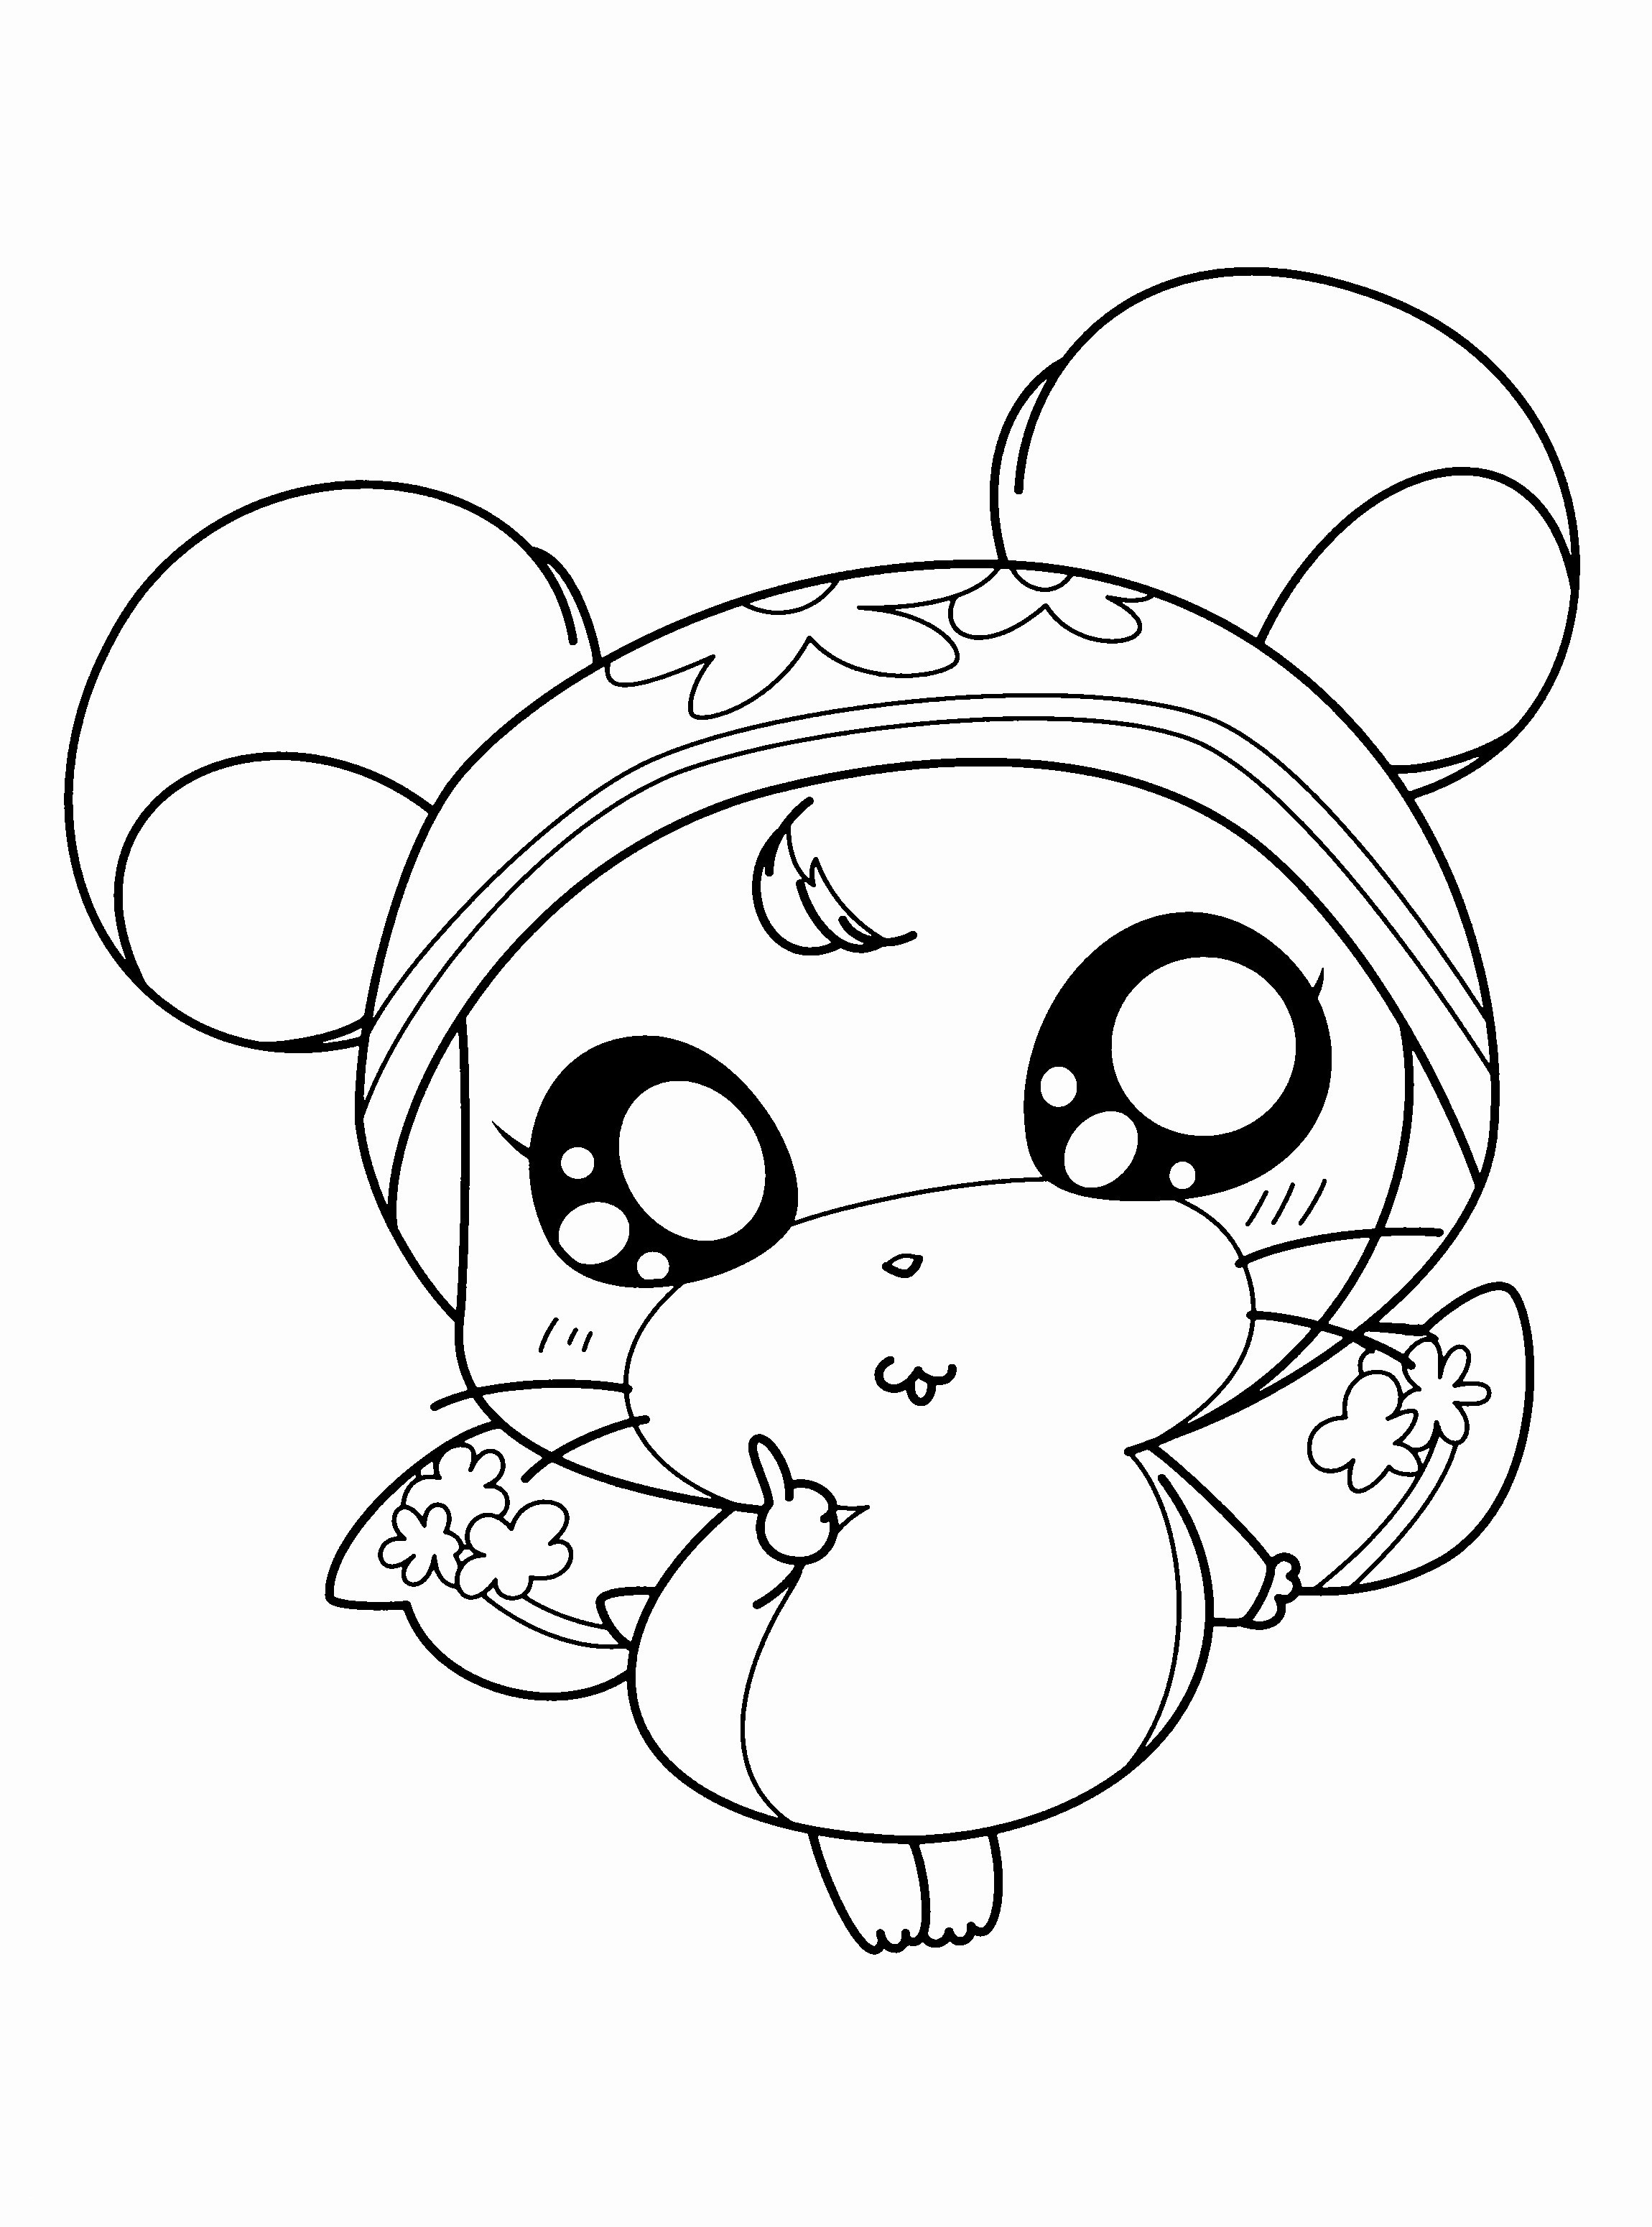 baby-animal-coloring-pictures-of-baby-animal-coloring-pictures Baby Animal Coloring Pictures Animal